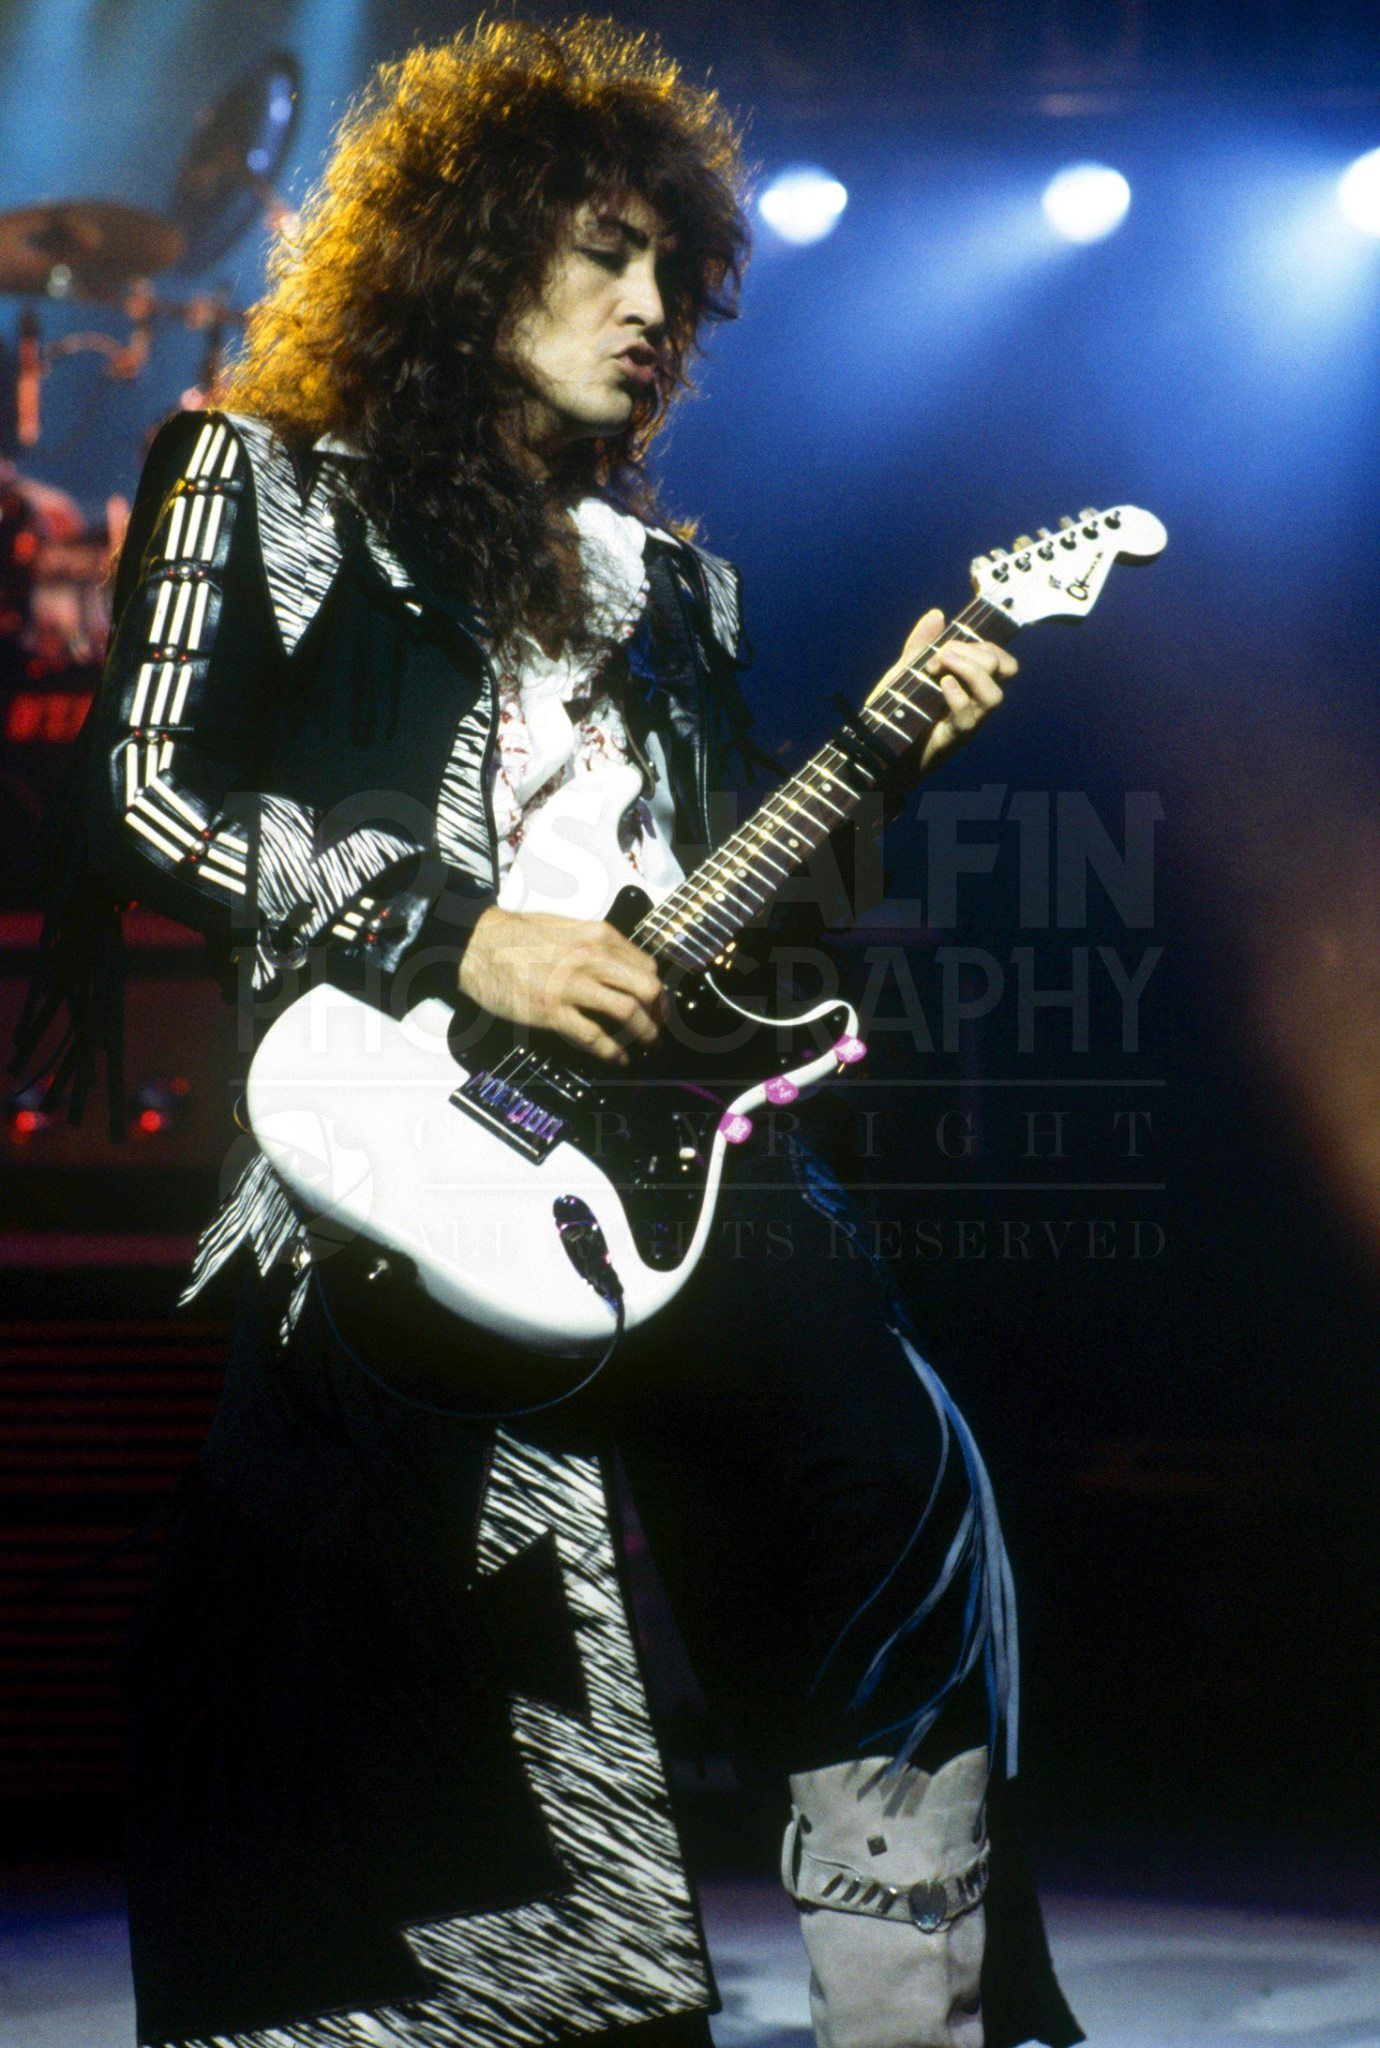 Ross Halfin Photography On Facebook 15 Feb 2015 Happy Birthday To Jake E Lee Photo From The Ultimate Sin Tour 1986 Jake E Lee Judas Priest Music